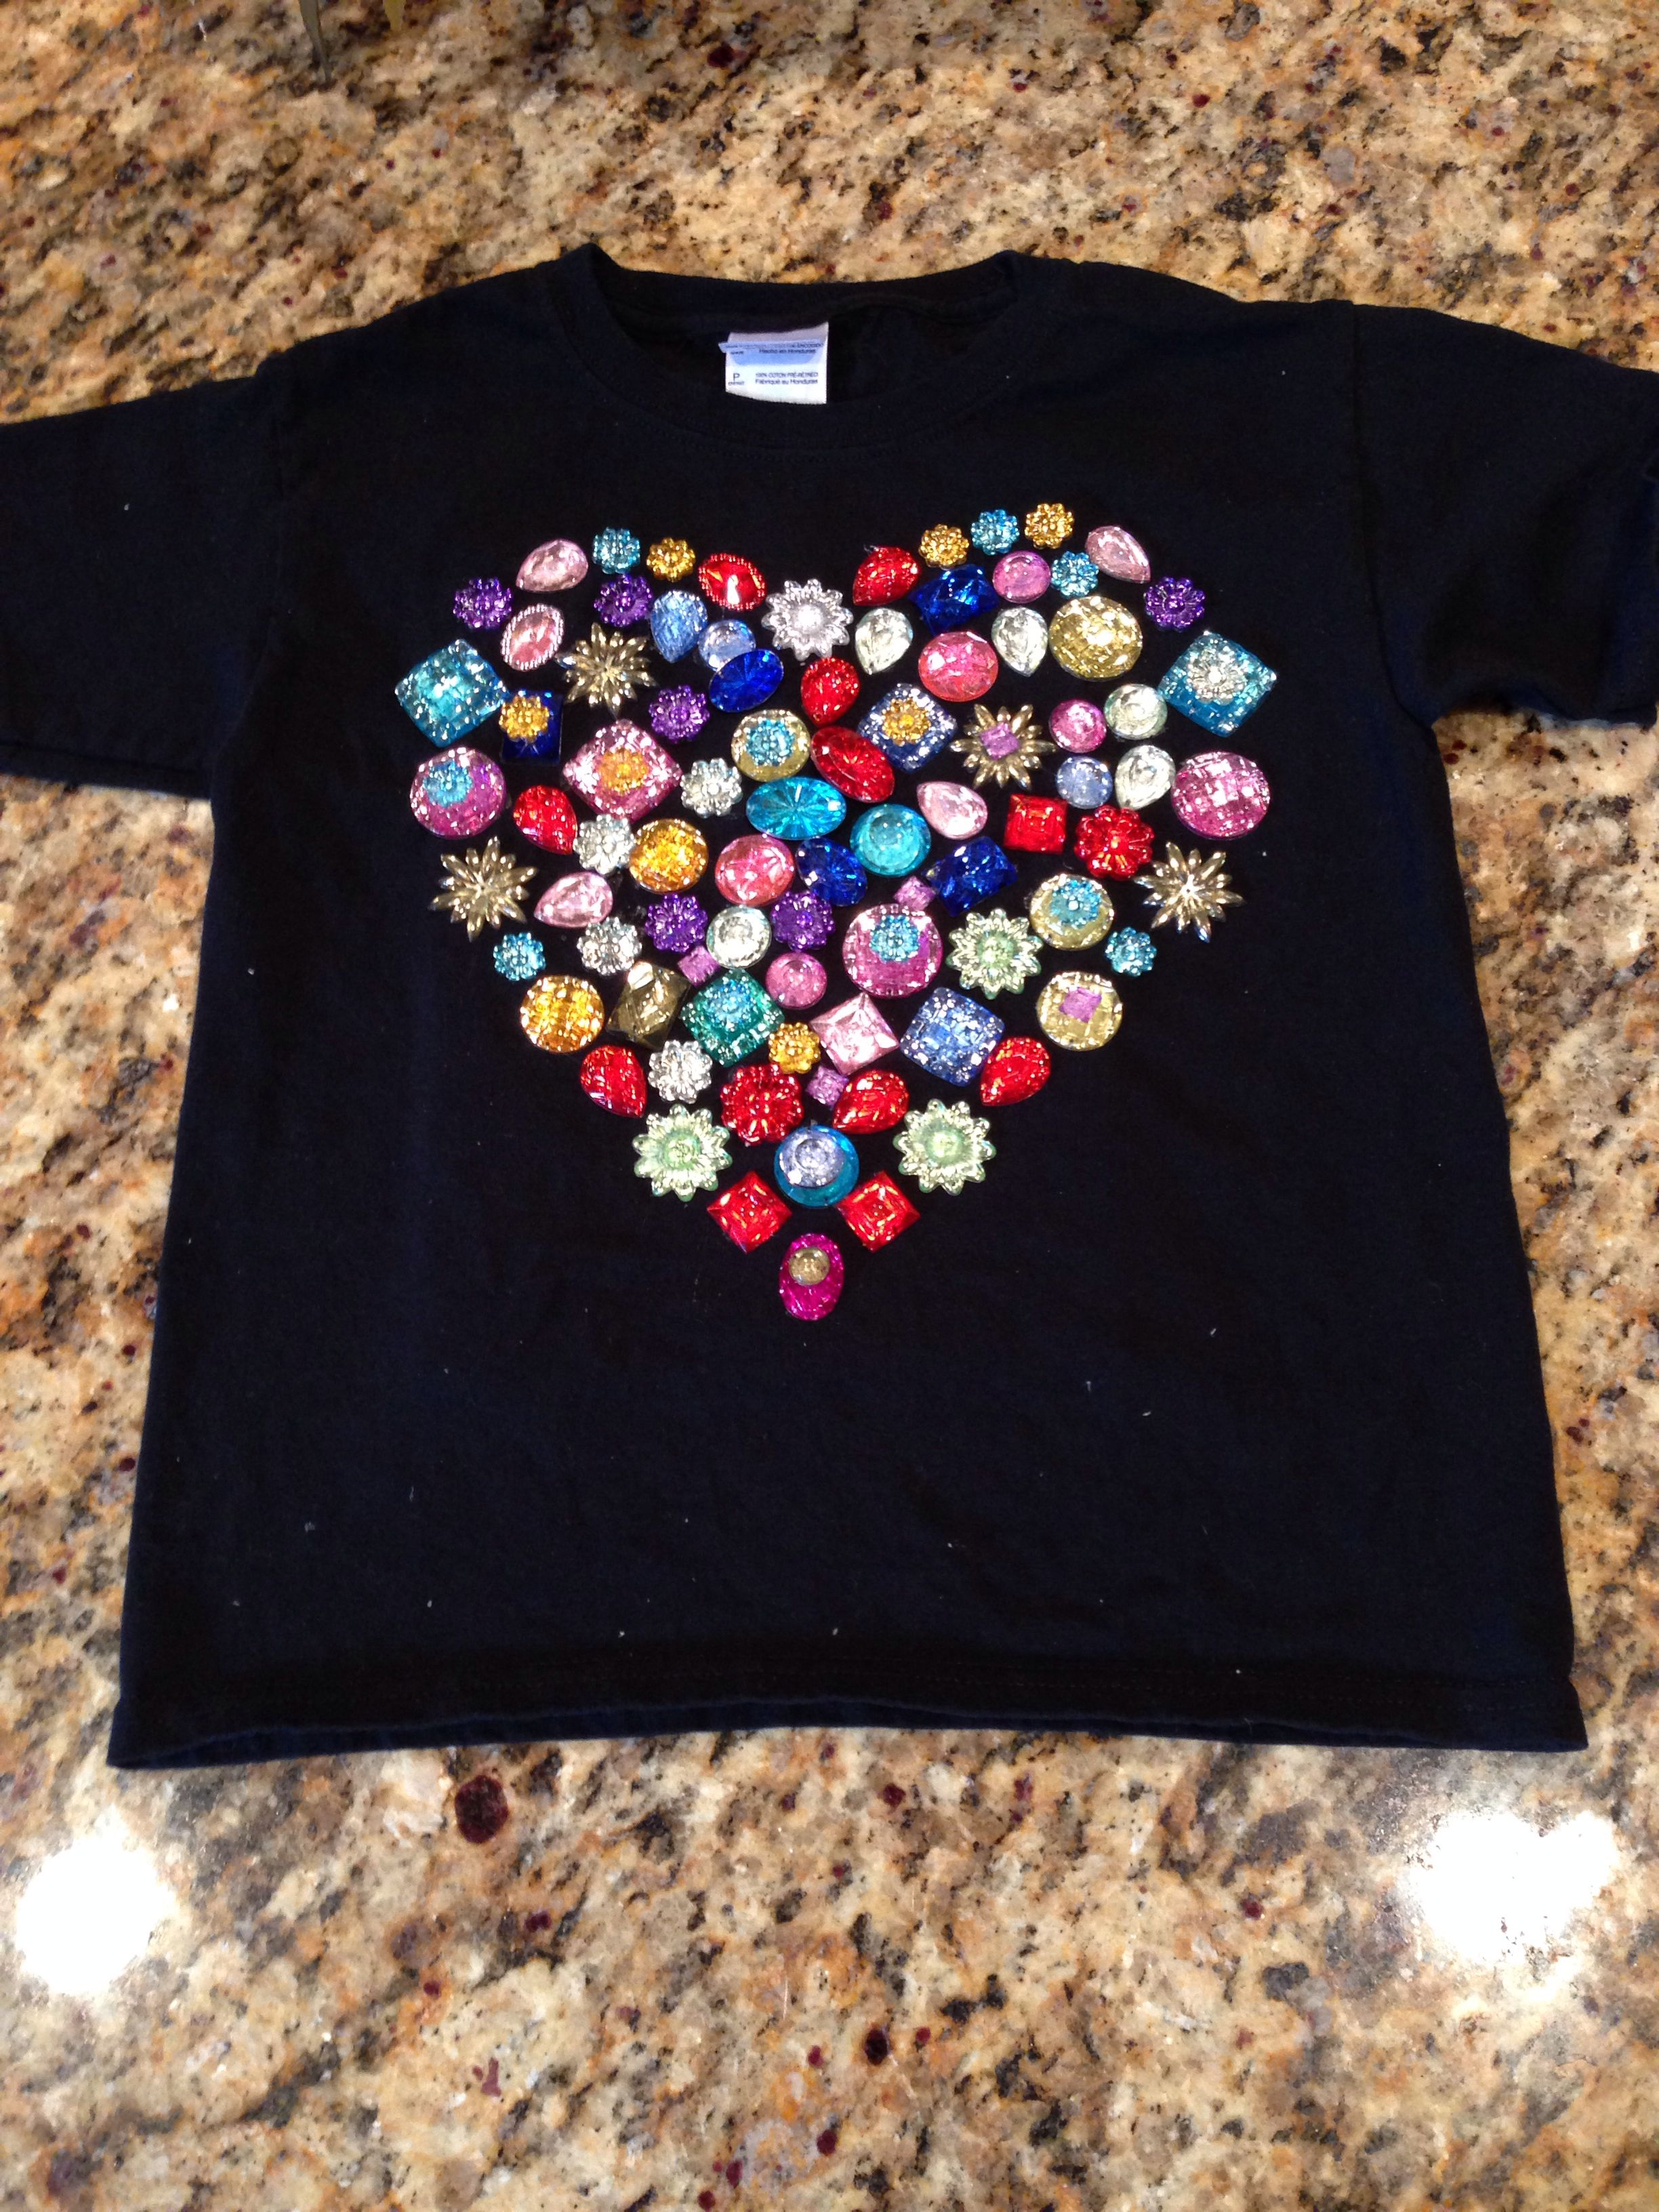 100th Day Of School T Shirt Made With 100 Random Glued On Inbloom